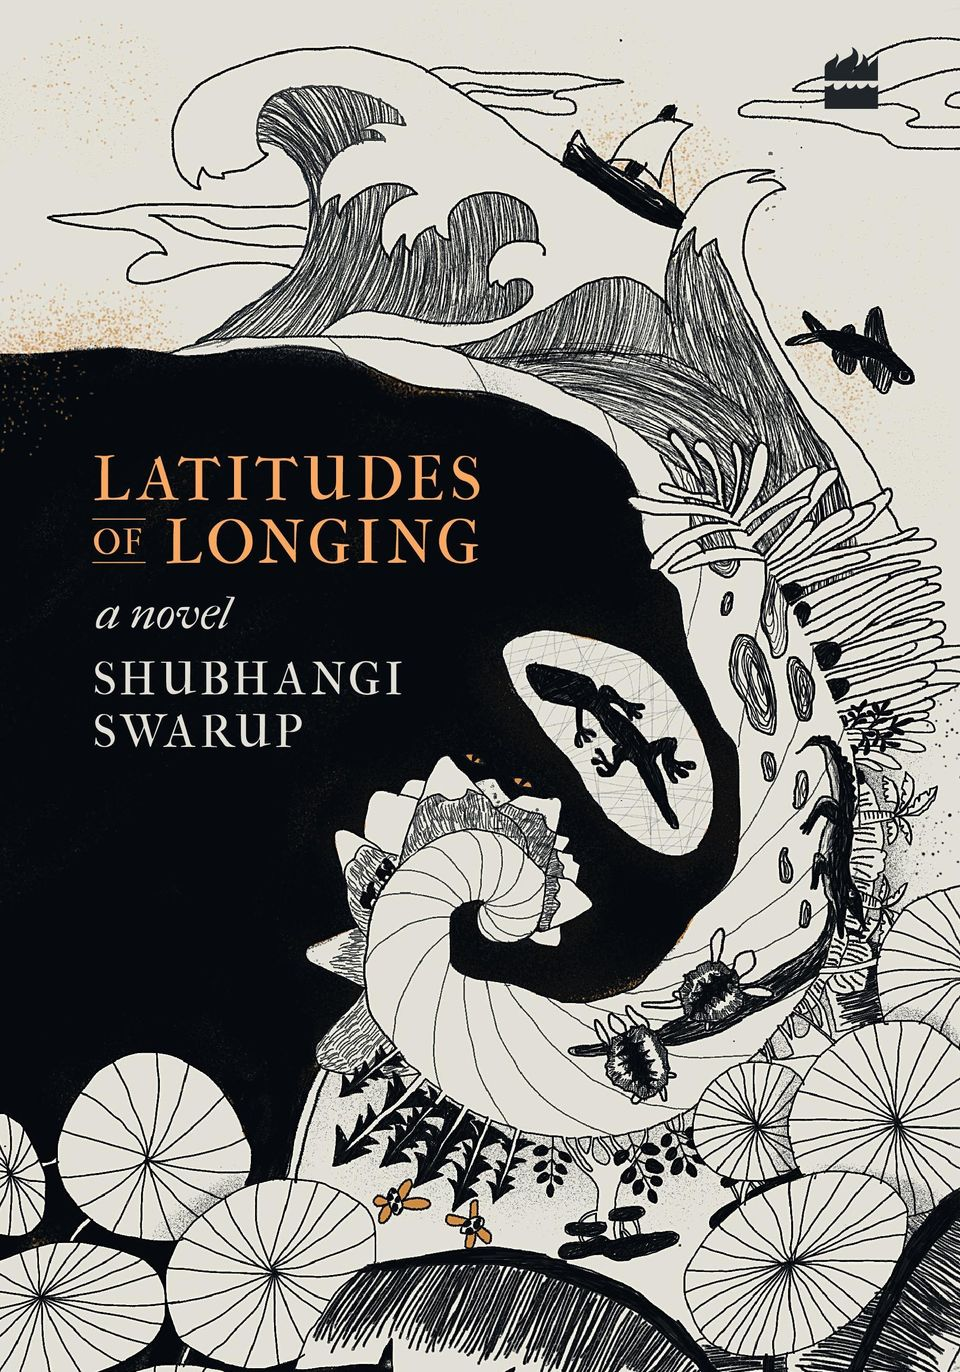 'Latitudes of Longing'is a perfect read for fans of Anita Desai and Arundhati